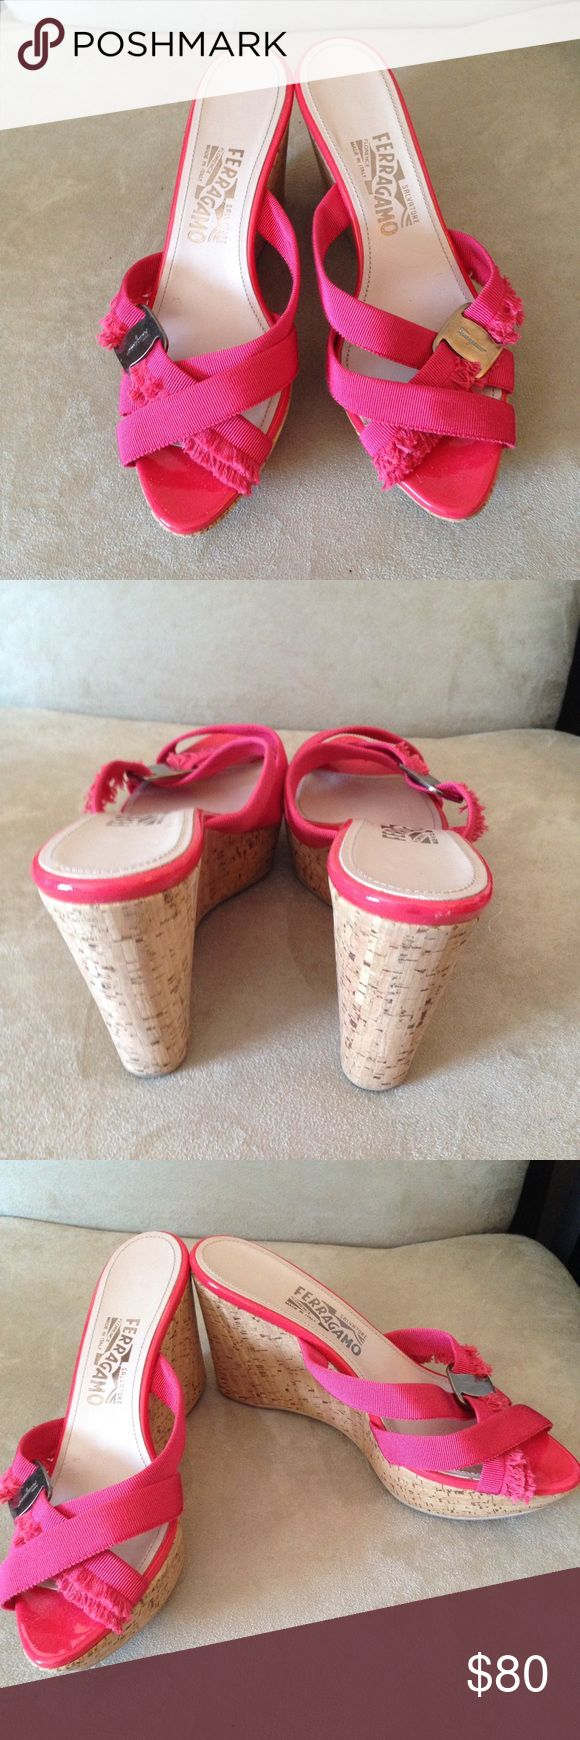 💥Salvatore Ferragamo 'Griselda' Cork Wedges💥 Only worn once, gorgeous hot pink cork 4 inch wedge sandals in excellent condition! Salvatore Ferragamo Shoes Sandals